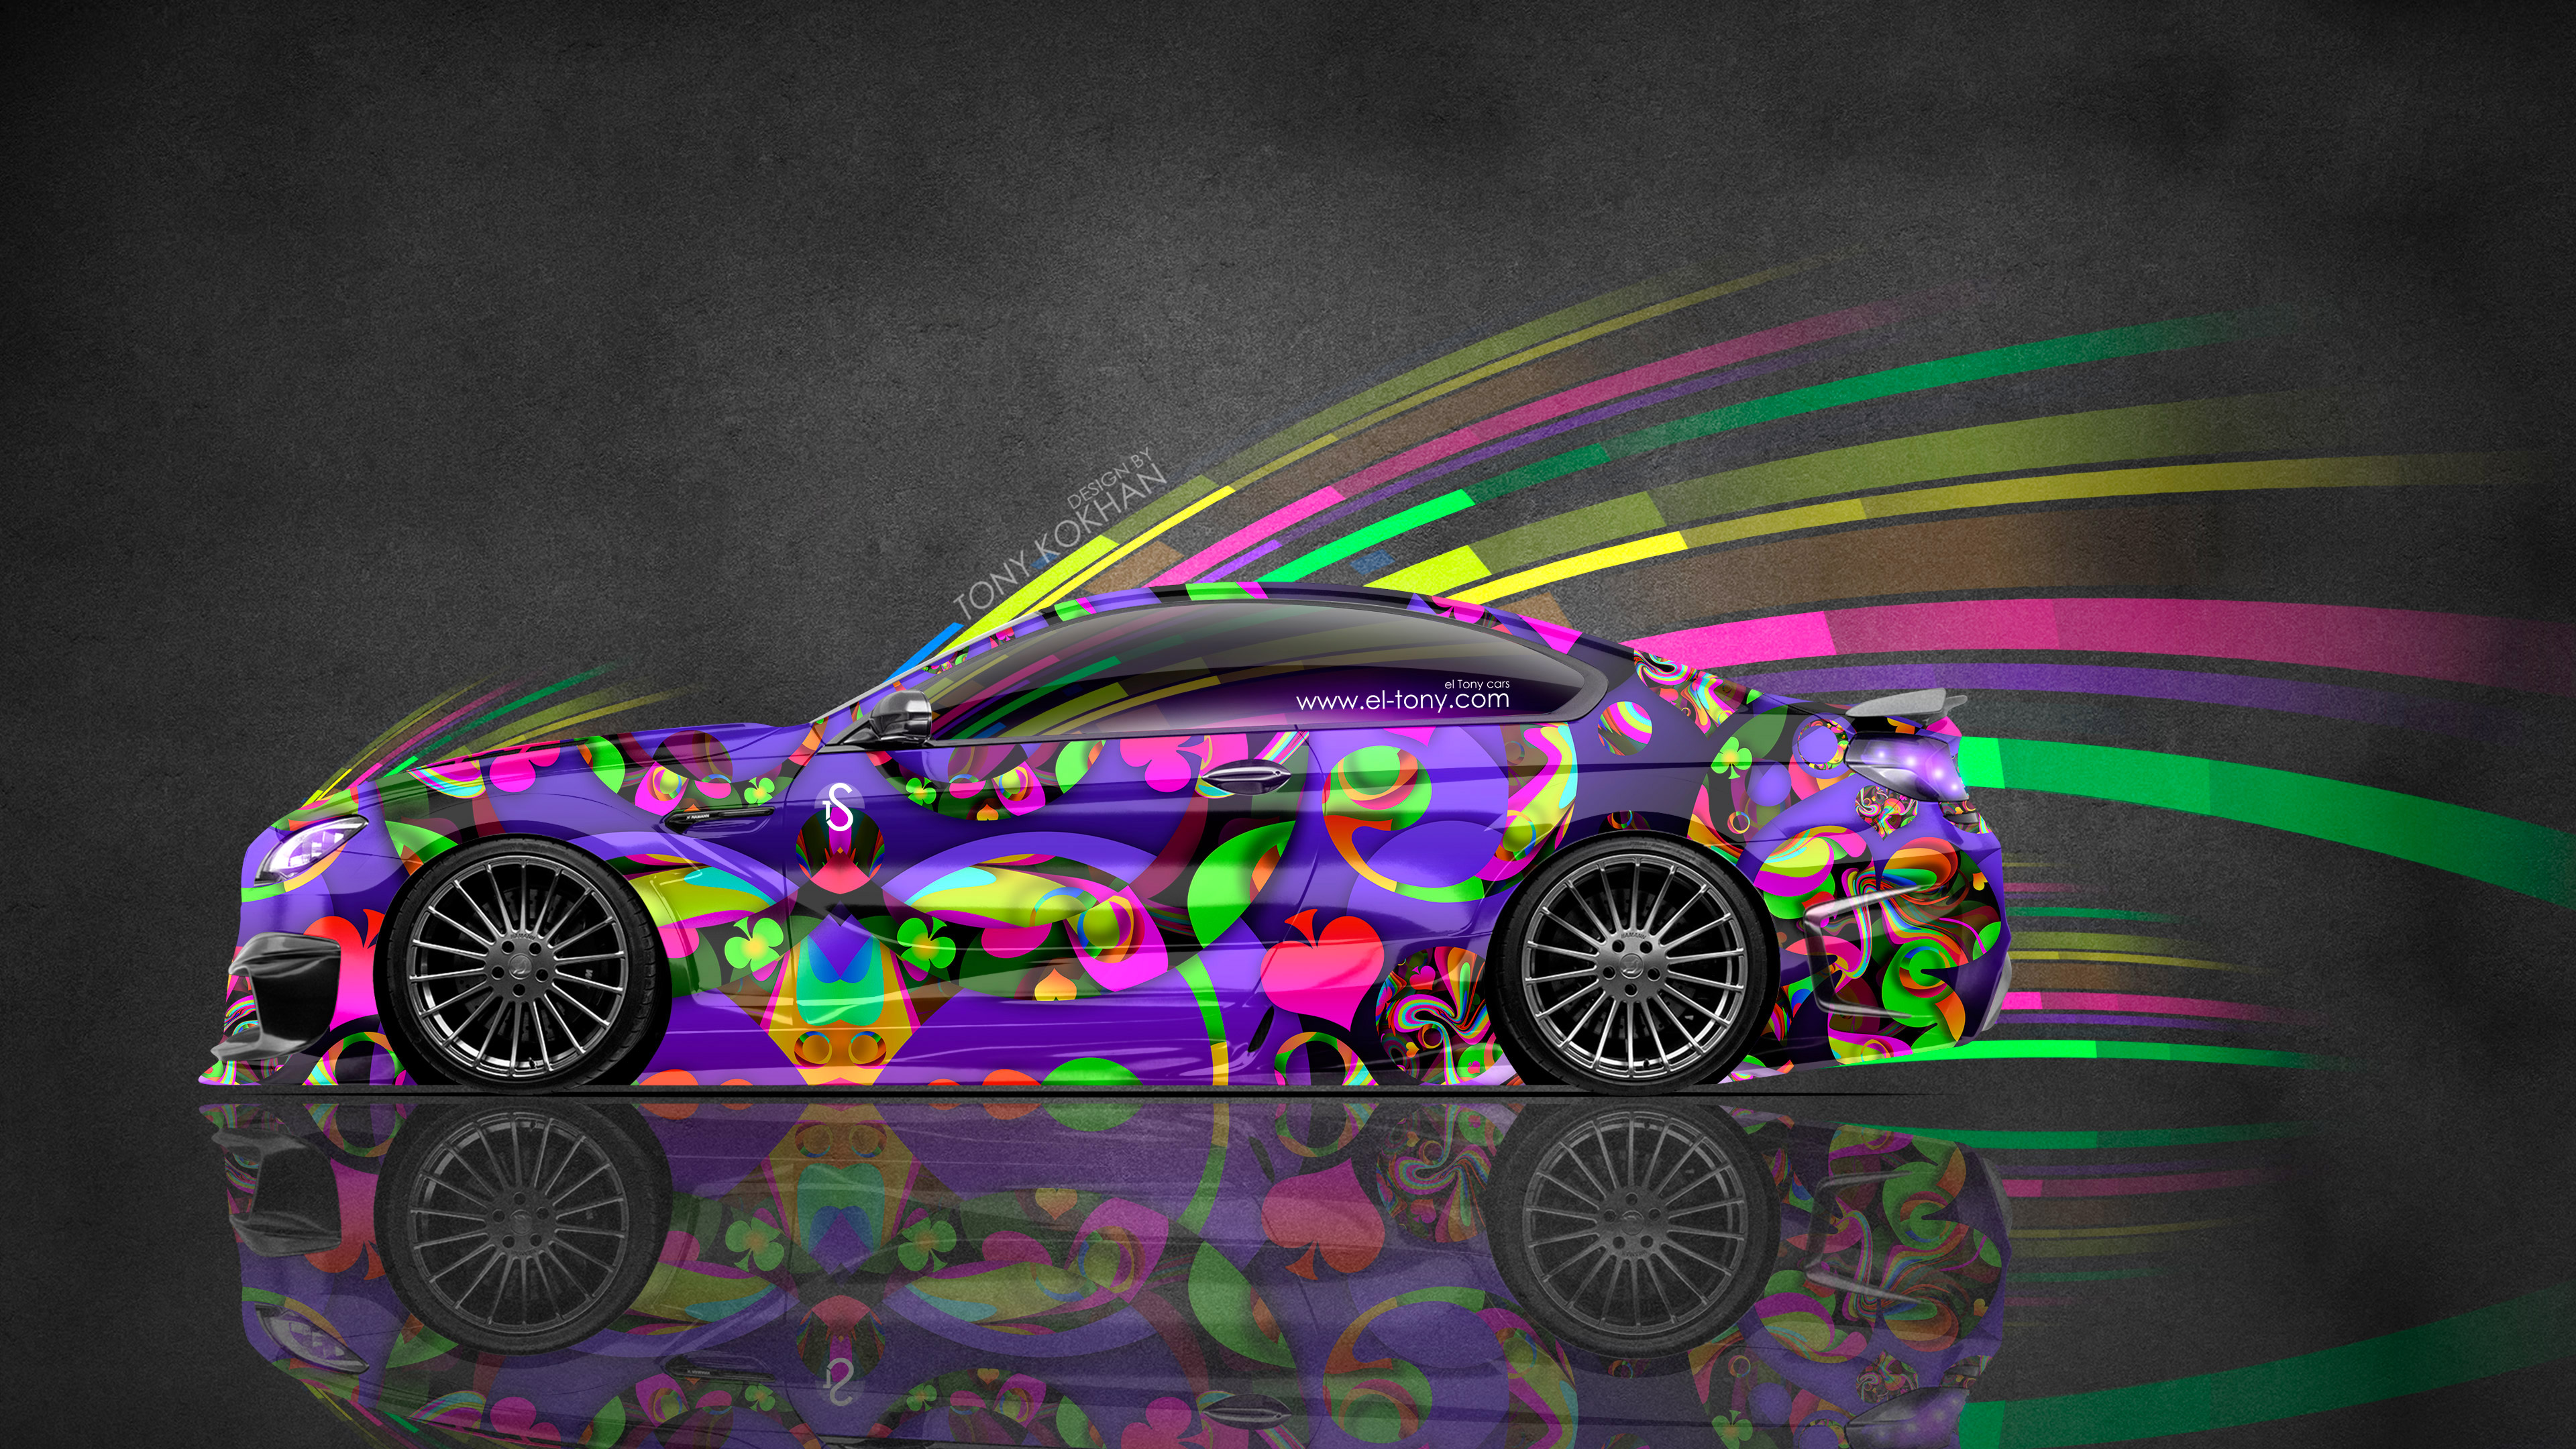 BMW-M6-Hamann-Tuning-Side-Super-Abstract-Aerography-Car-2015-Multicolors-4K-Wallpapers-design-by-Tony-Kokhan-www.el-tony.com-image